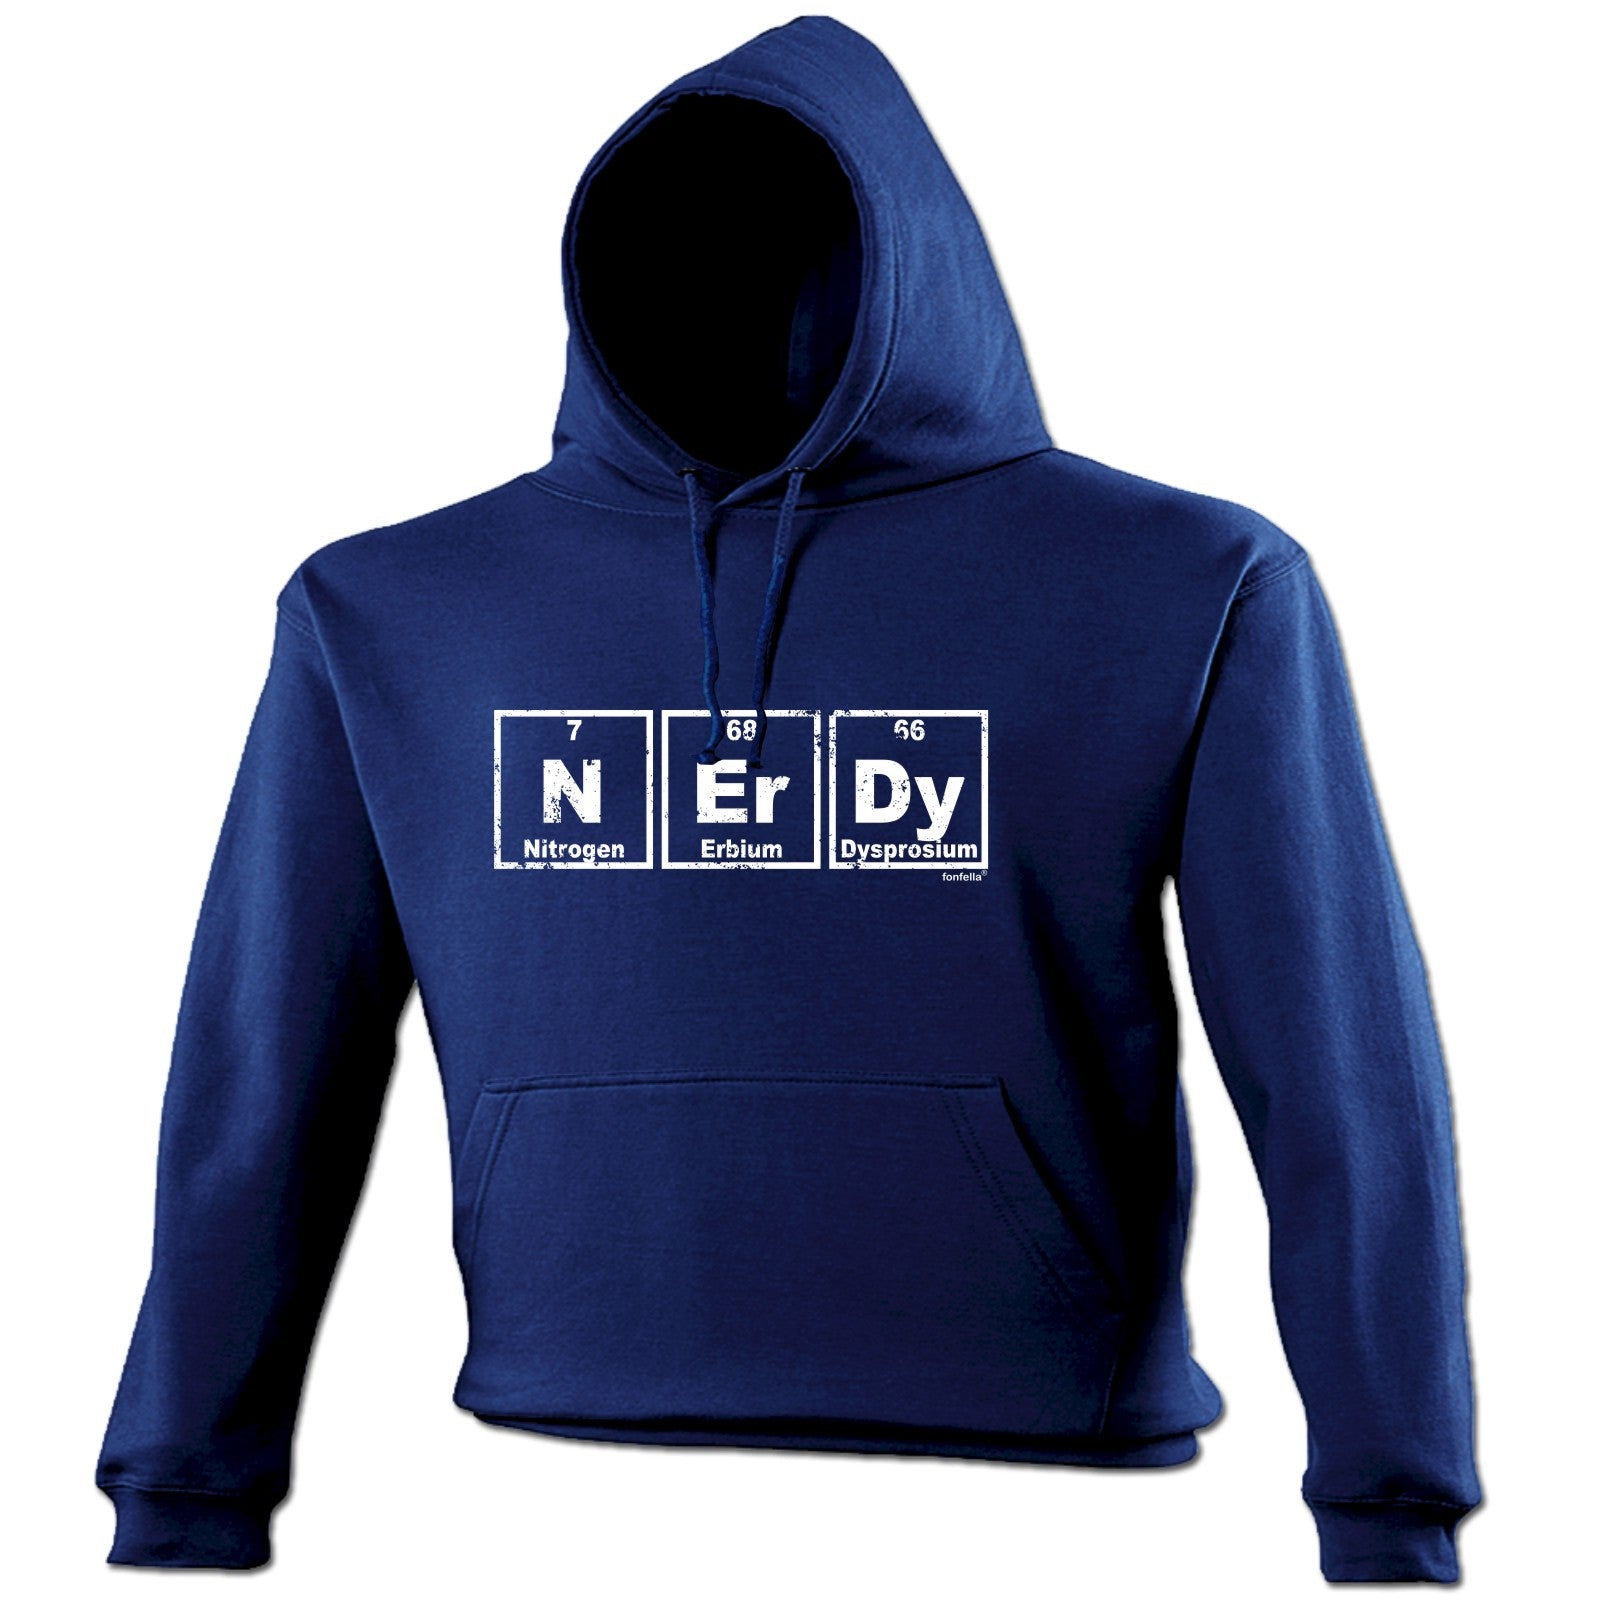 N er dy periodic table hoodie hoody birthday gift geek geeky nerdy n er dy periodic table hoodie hoody birthday gamestrikefo Image collections